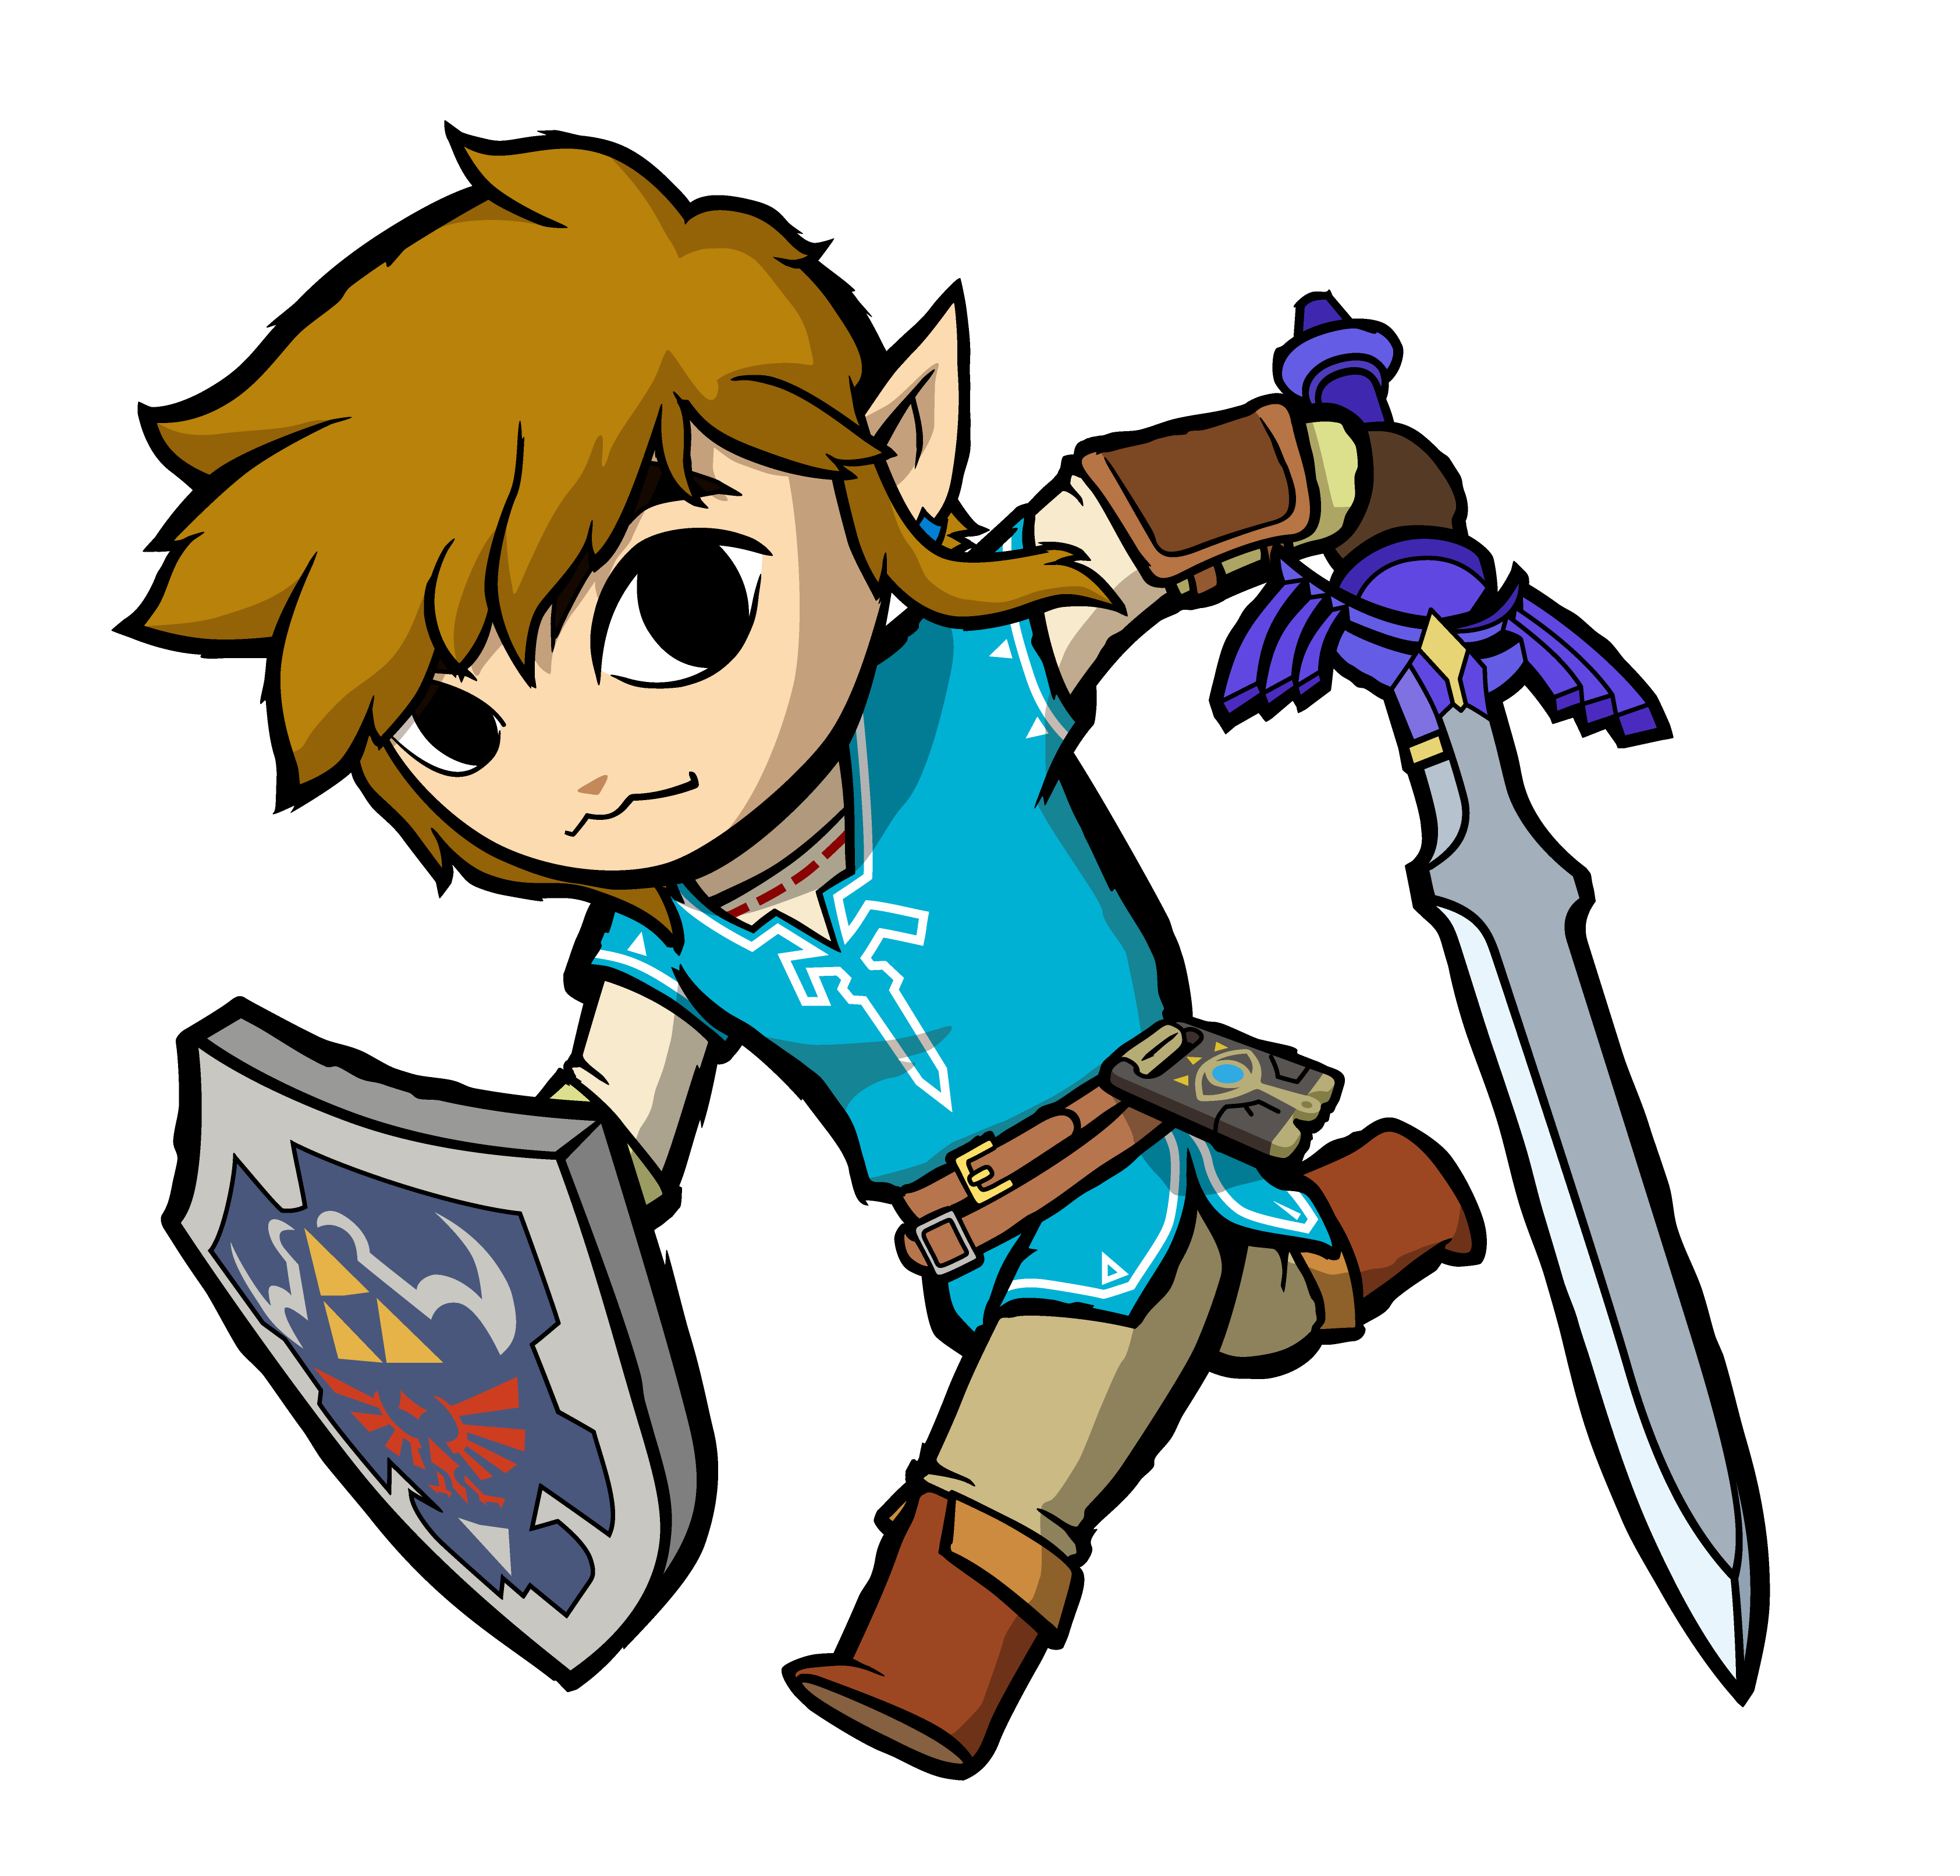 OC ART] I drew Breath of the Wild link in the toon link.